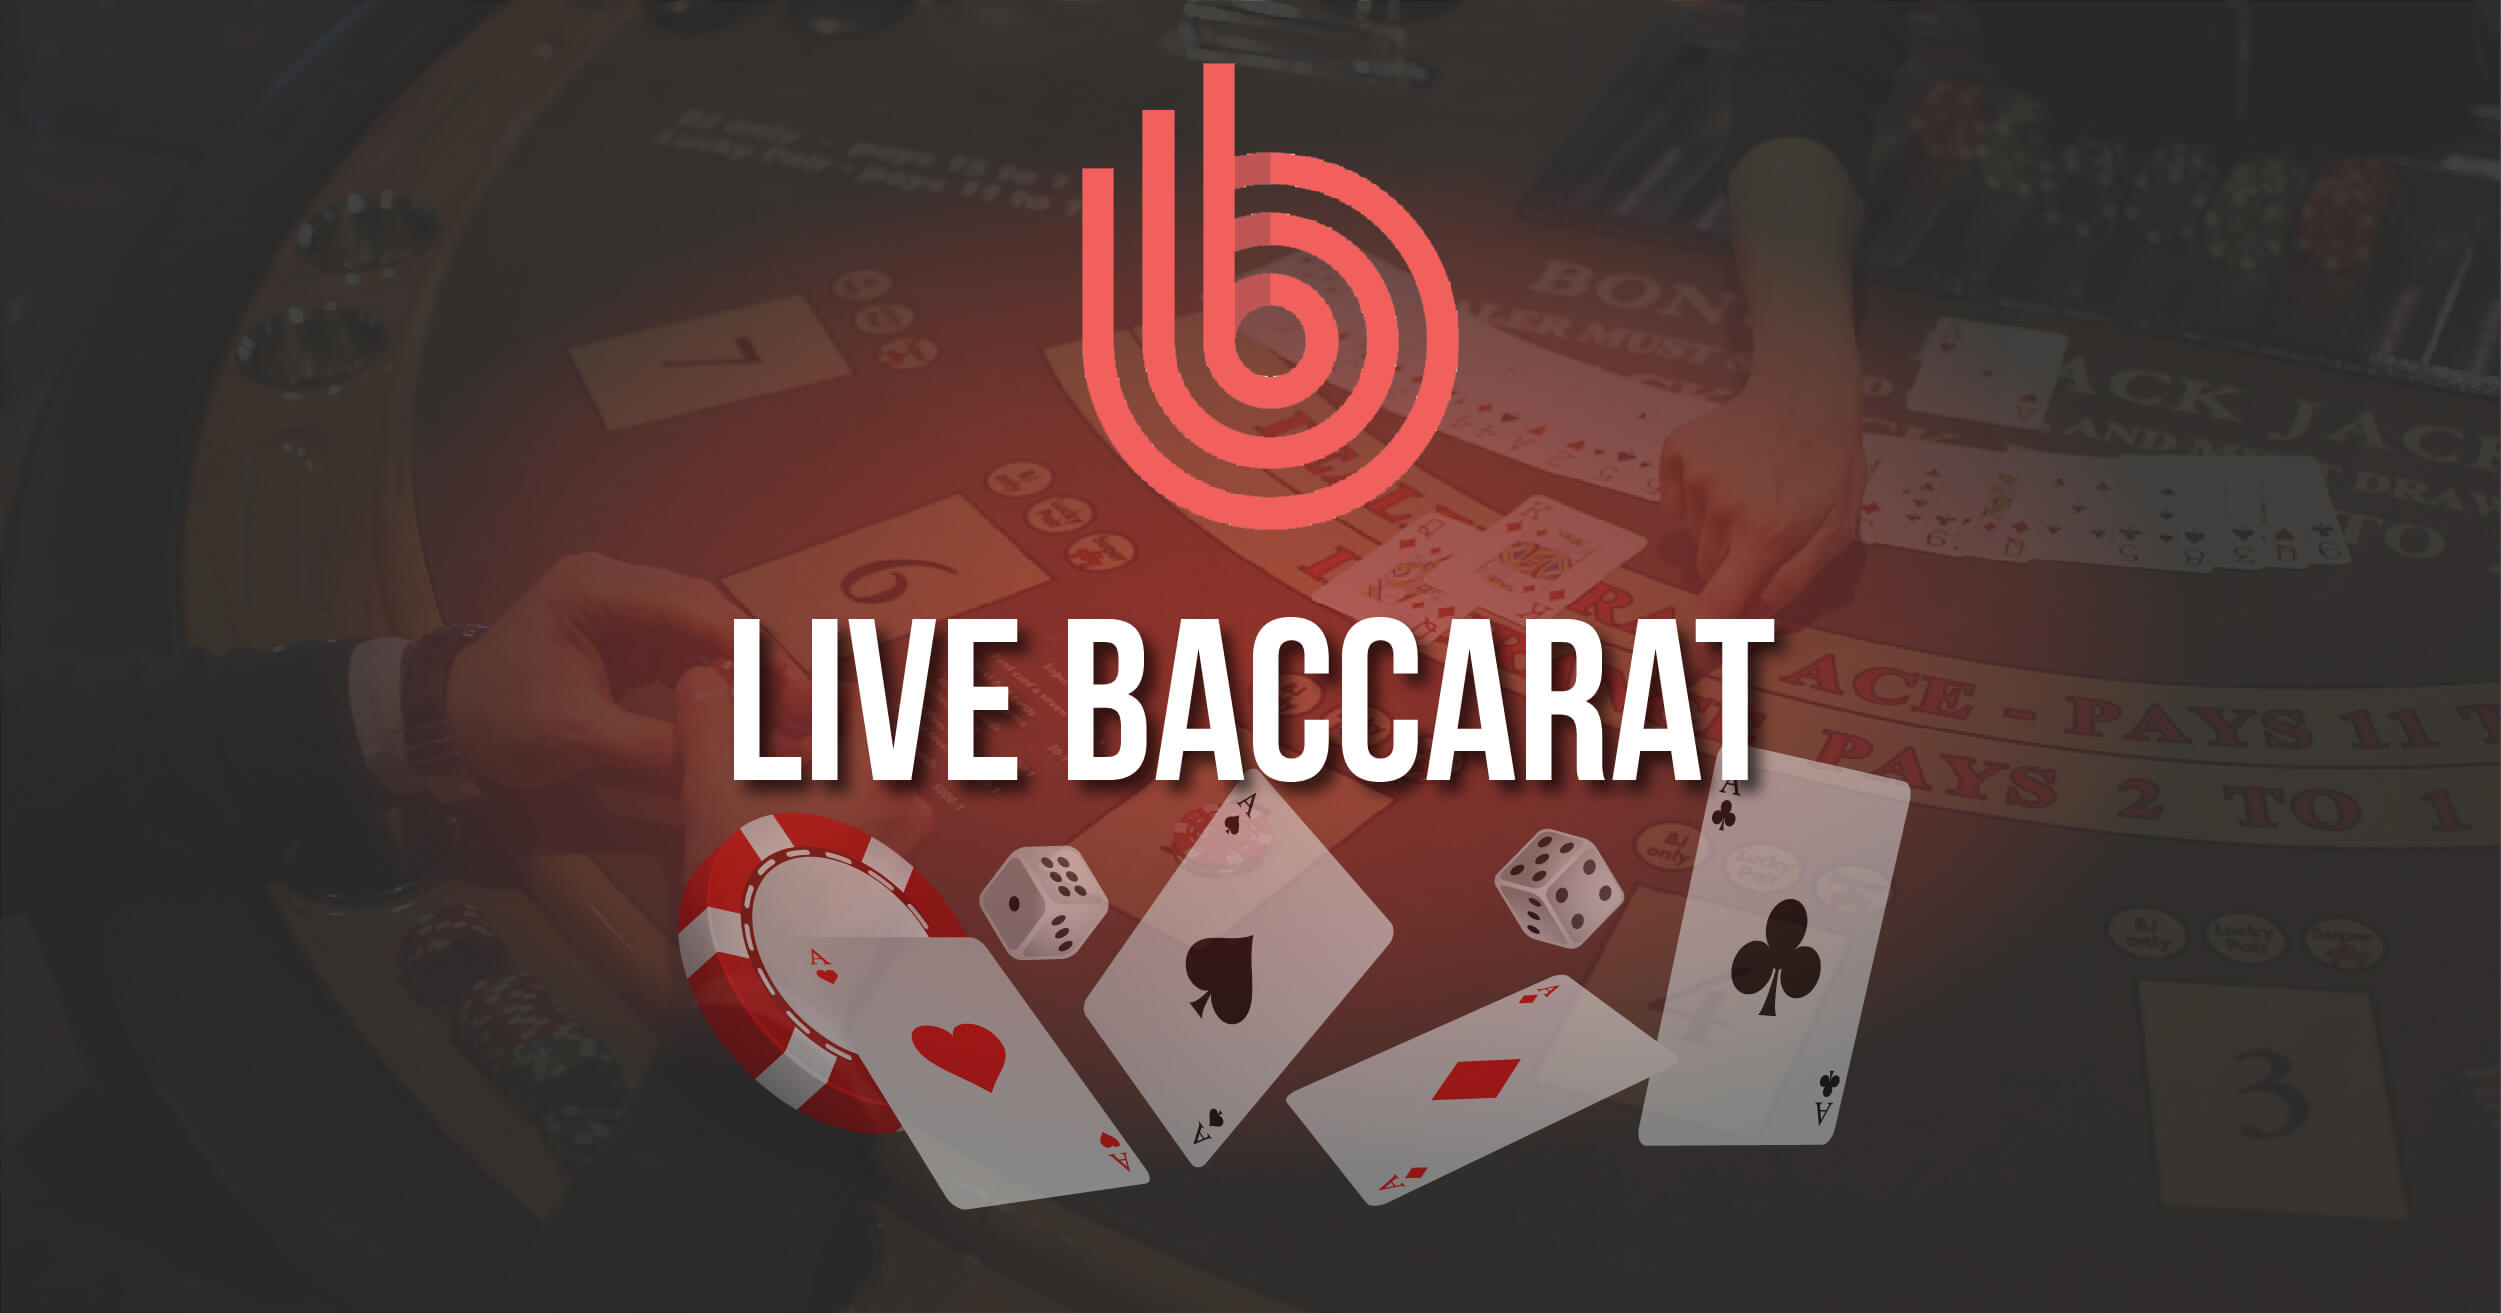 Live Baccarat Review